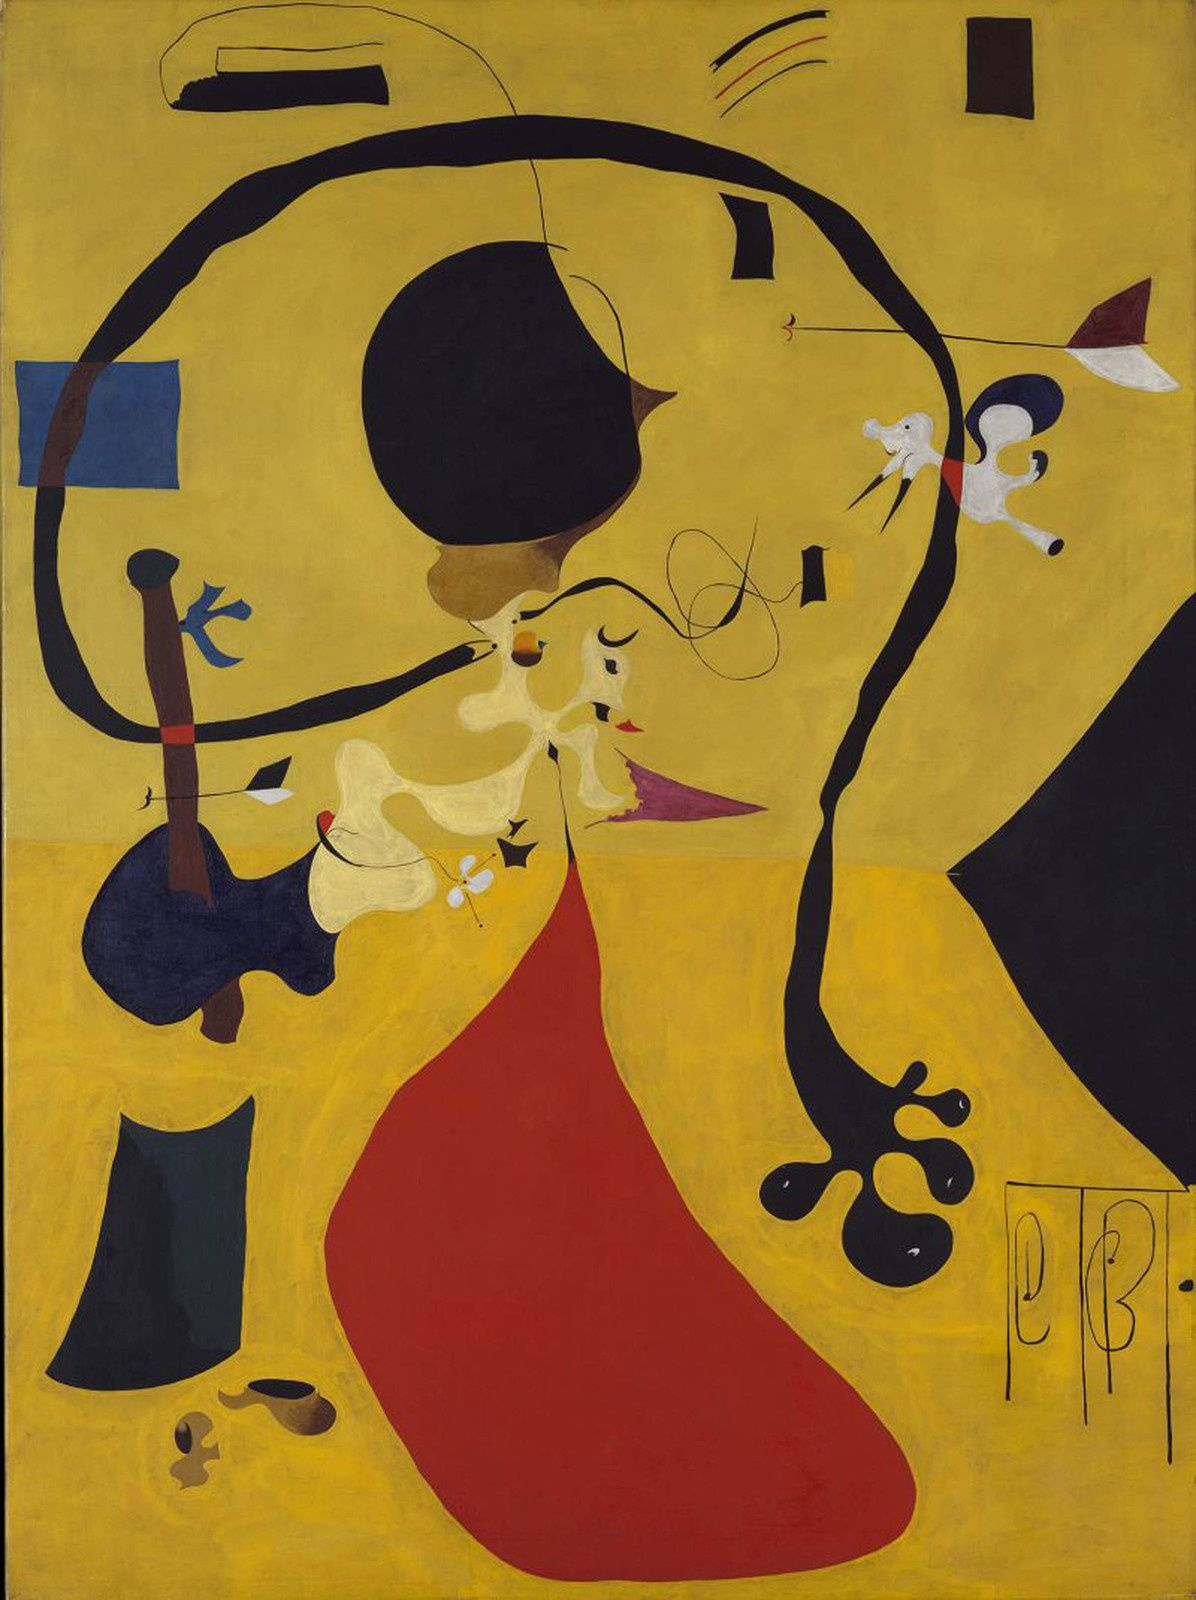 """Intérieur hollandais (III)"",  1928 de Joan MIRO - Courtesy SUCCESSION Miró_ ADAGP PARIS (THE METROPOLITAN MUSEUM OF ART)"